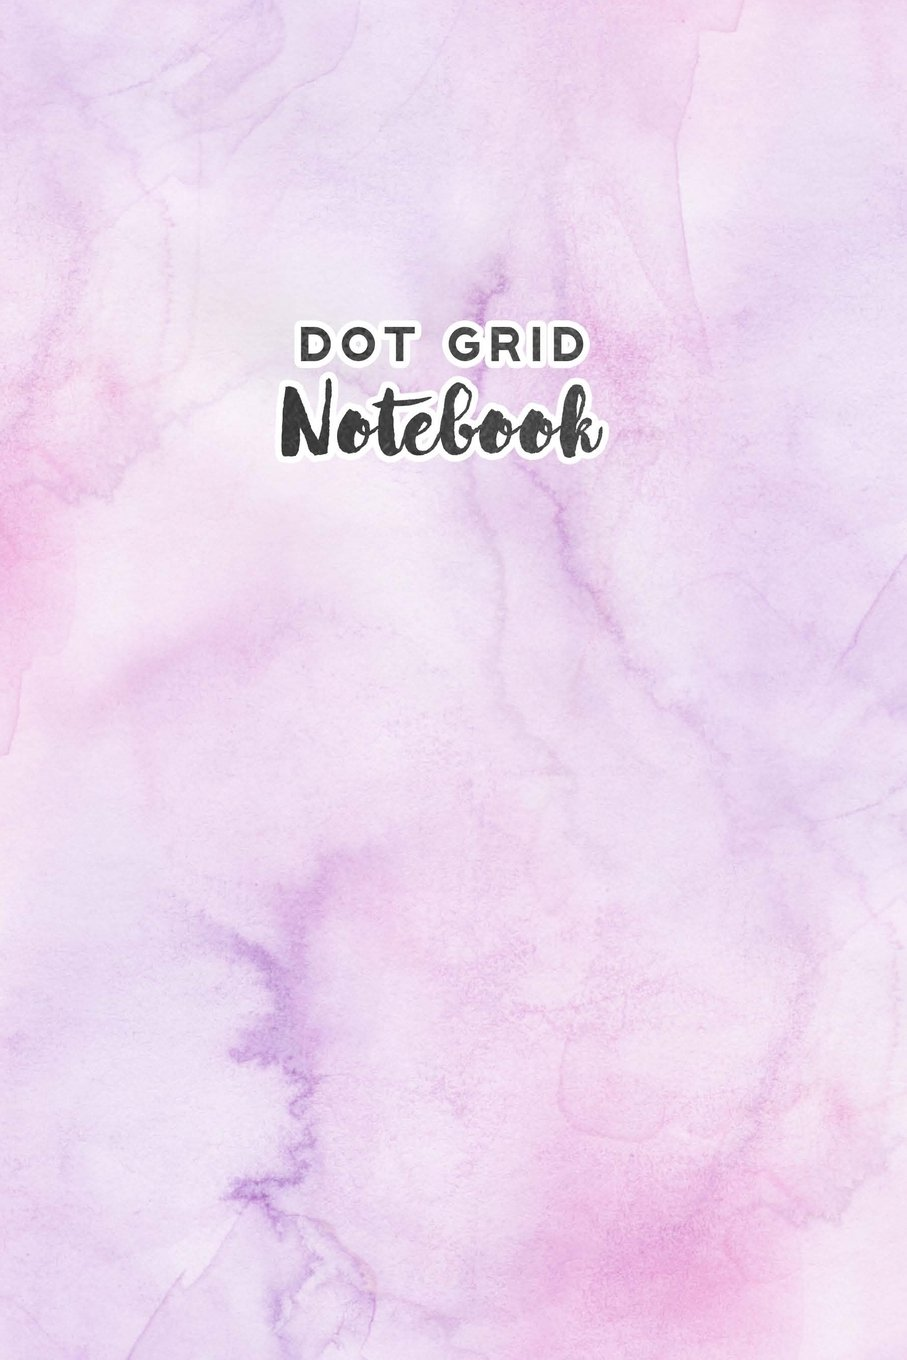 Download Dot Grid Notebook: Bullet Journal Pink Purple Watercolor Notebook Dotted Pages Small Planner Journal Sketchbook Diary (6 x 9) Softbound Cover (Bullet Journals) pdf